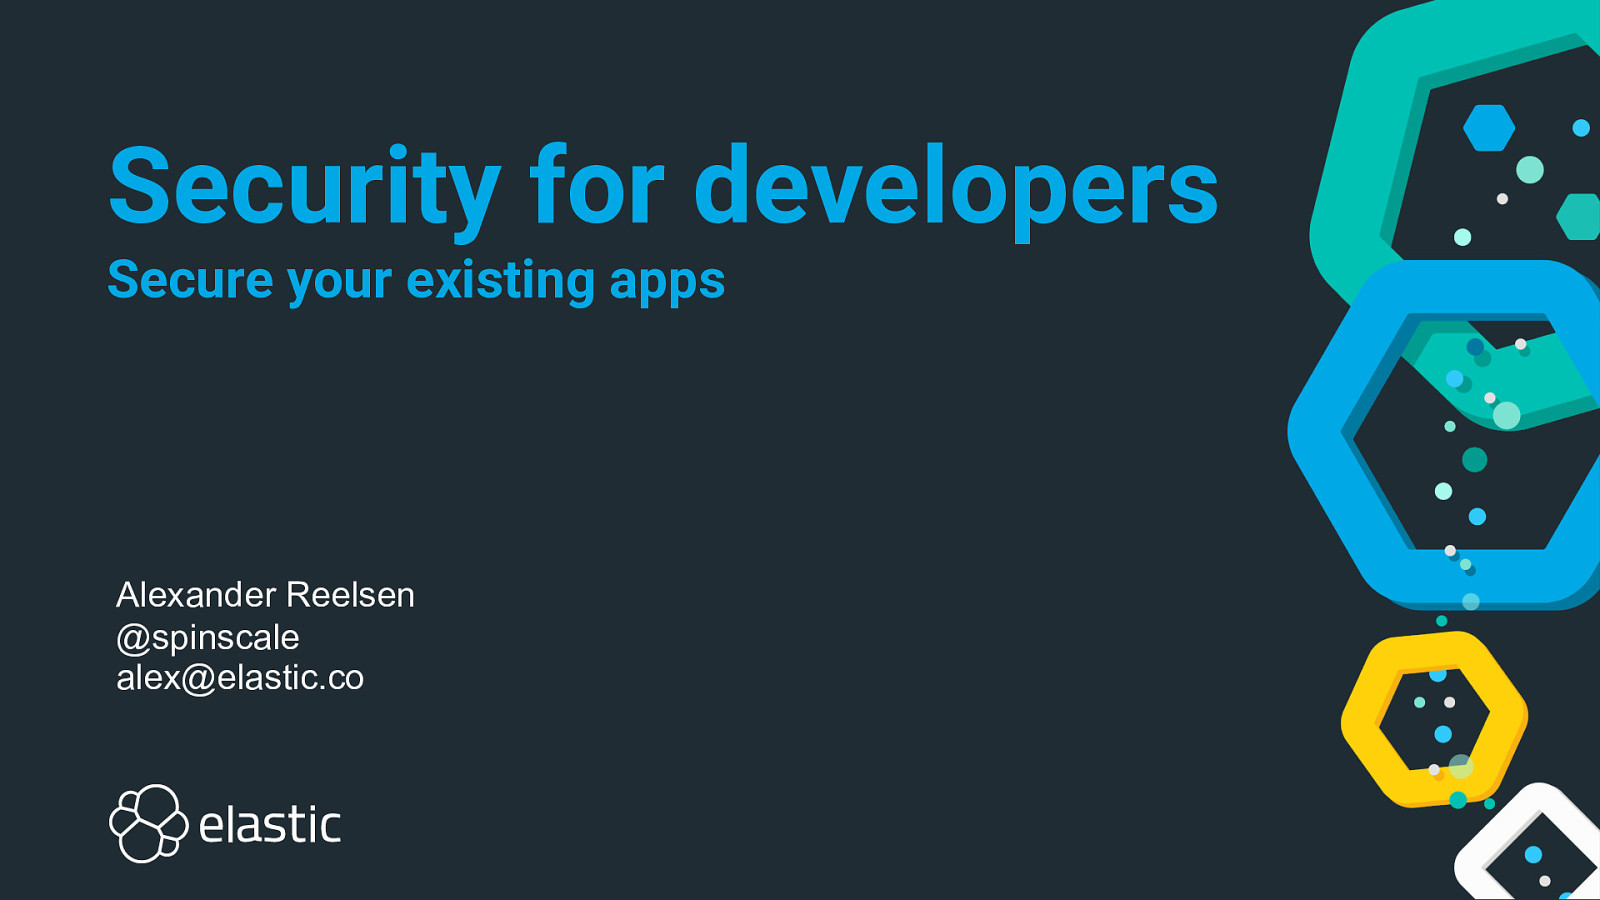 Security for developers - secure your existing apps